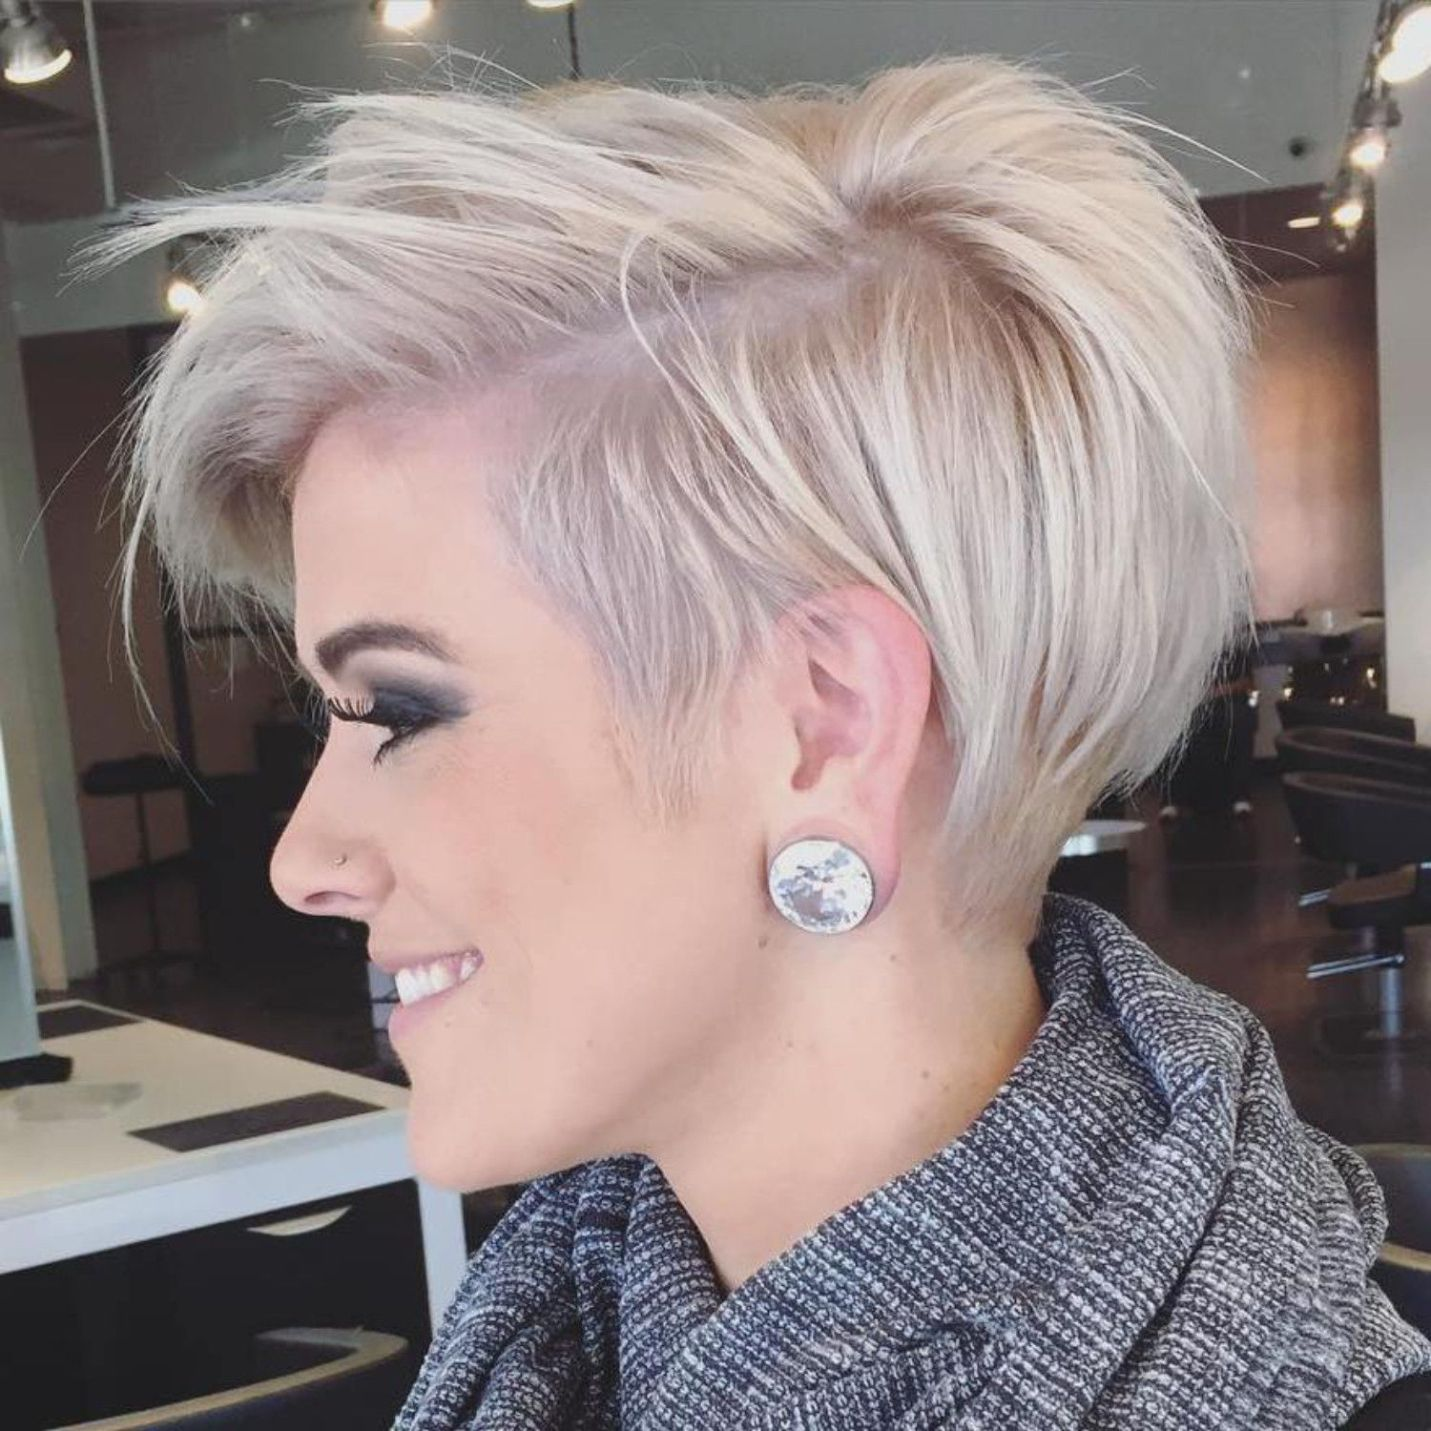 mindblowing short hairstyles for fine hair messy pixie pixie